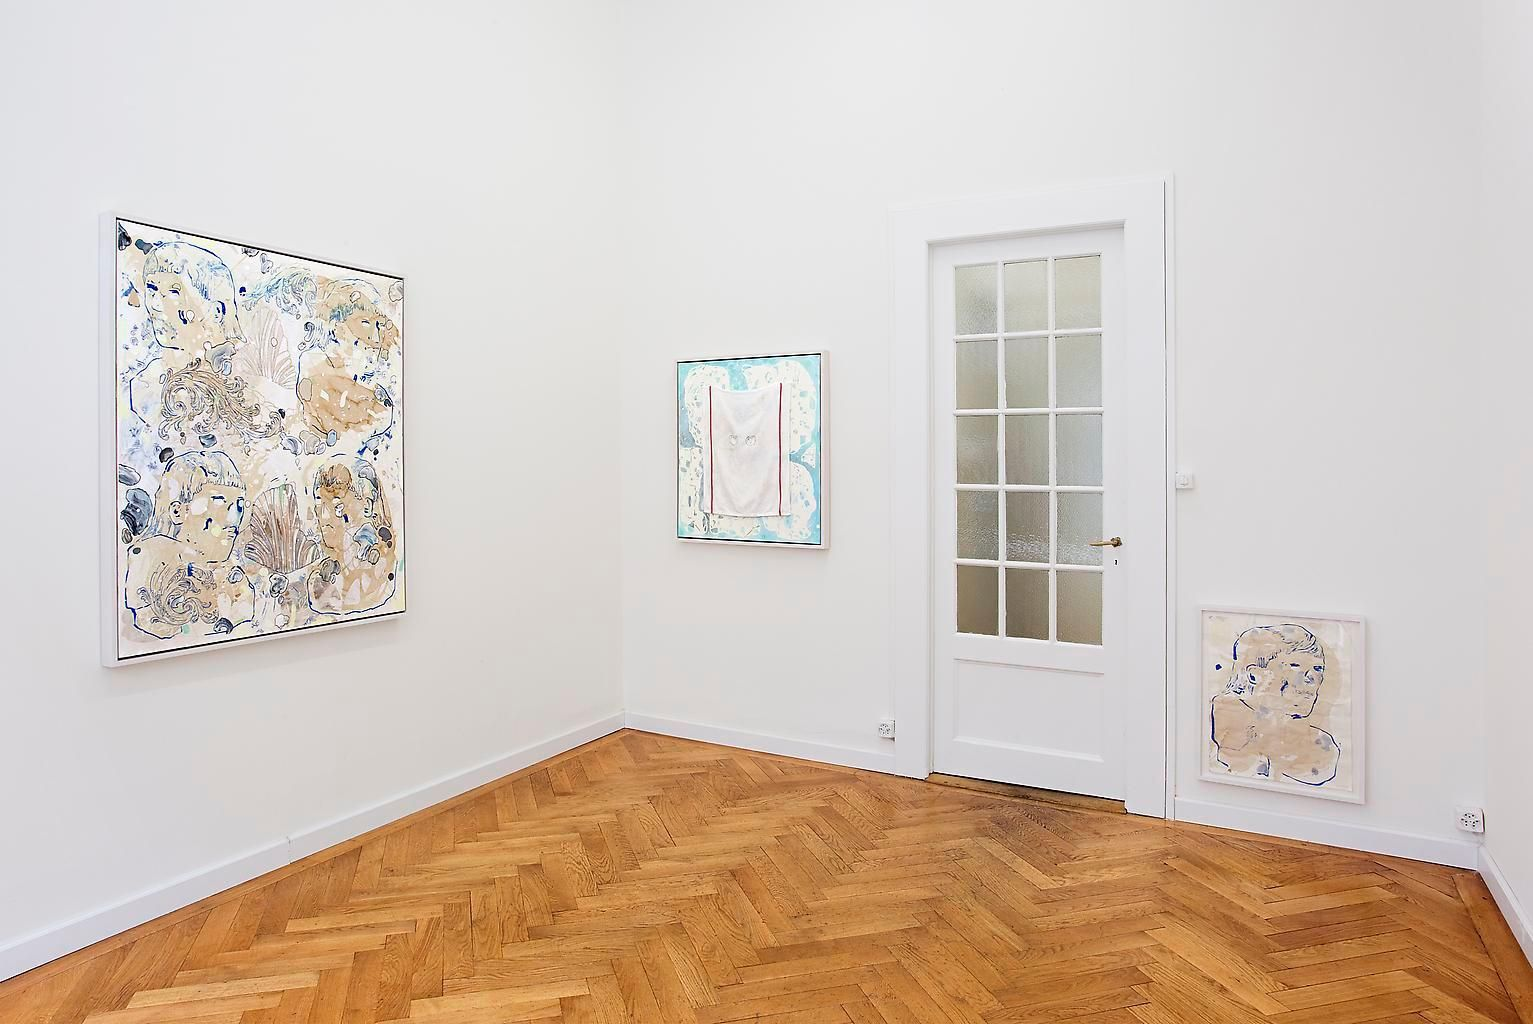 Installation view, Carter, Forthcoming, Marc Jancou, Geneva, September 15 - December 23, 2011